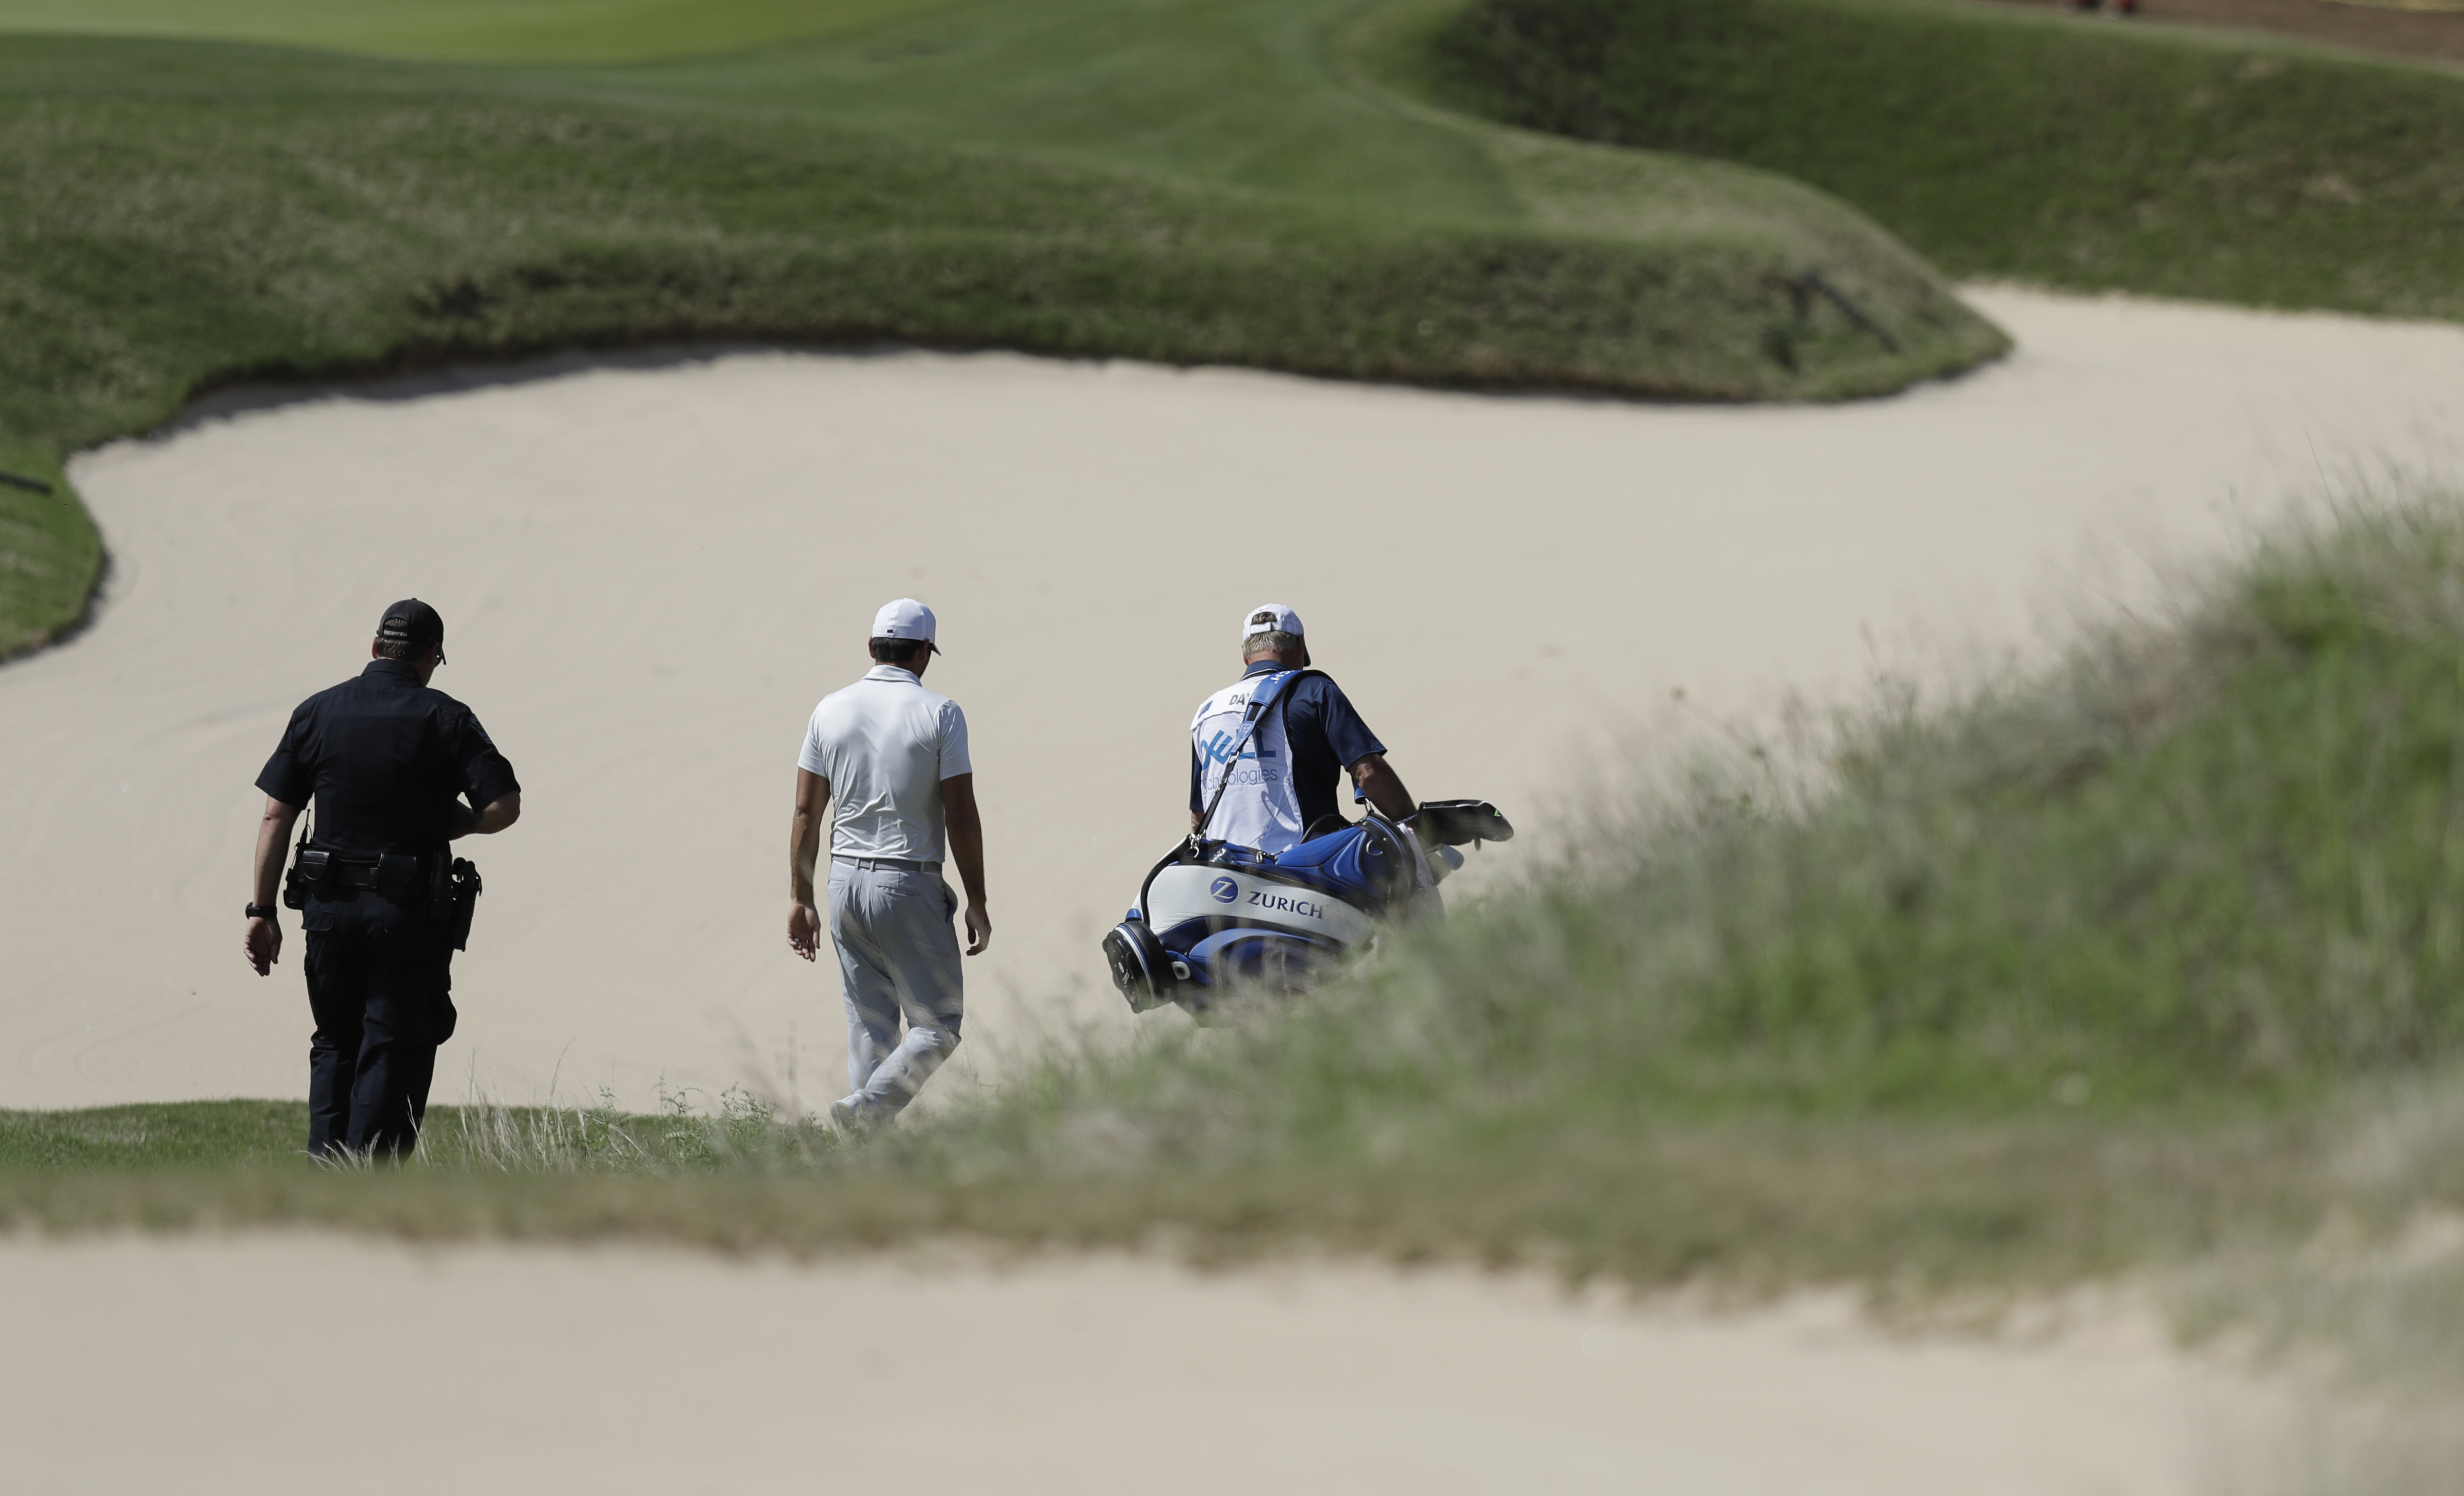 Defending champion Jason Day, center, of Australia, center, down the seventh hole after he conceded to Pat Perez after six holes of play during round-robin play at the Dell Technologies Match Play golf tournament at Austin County Club, Wednesday, March 22